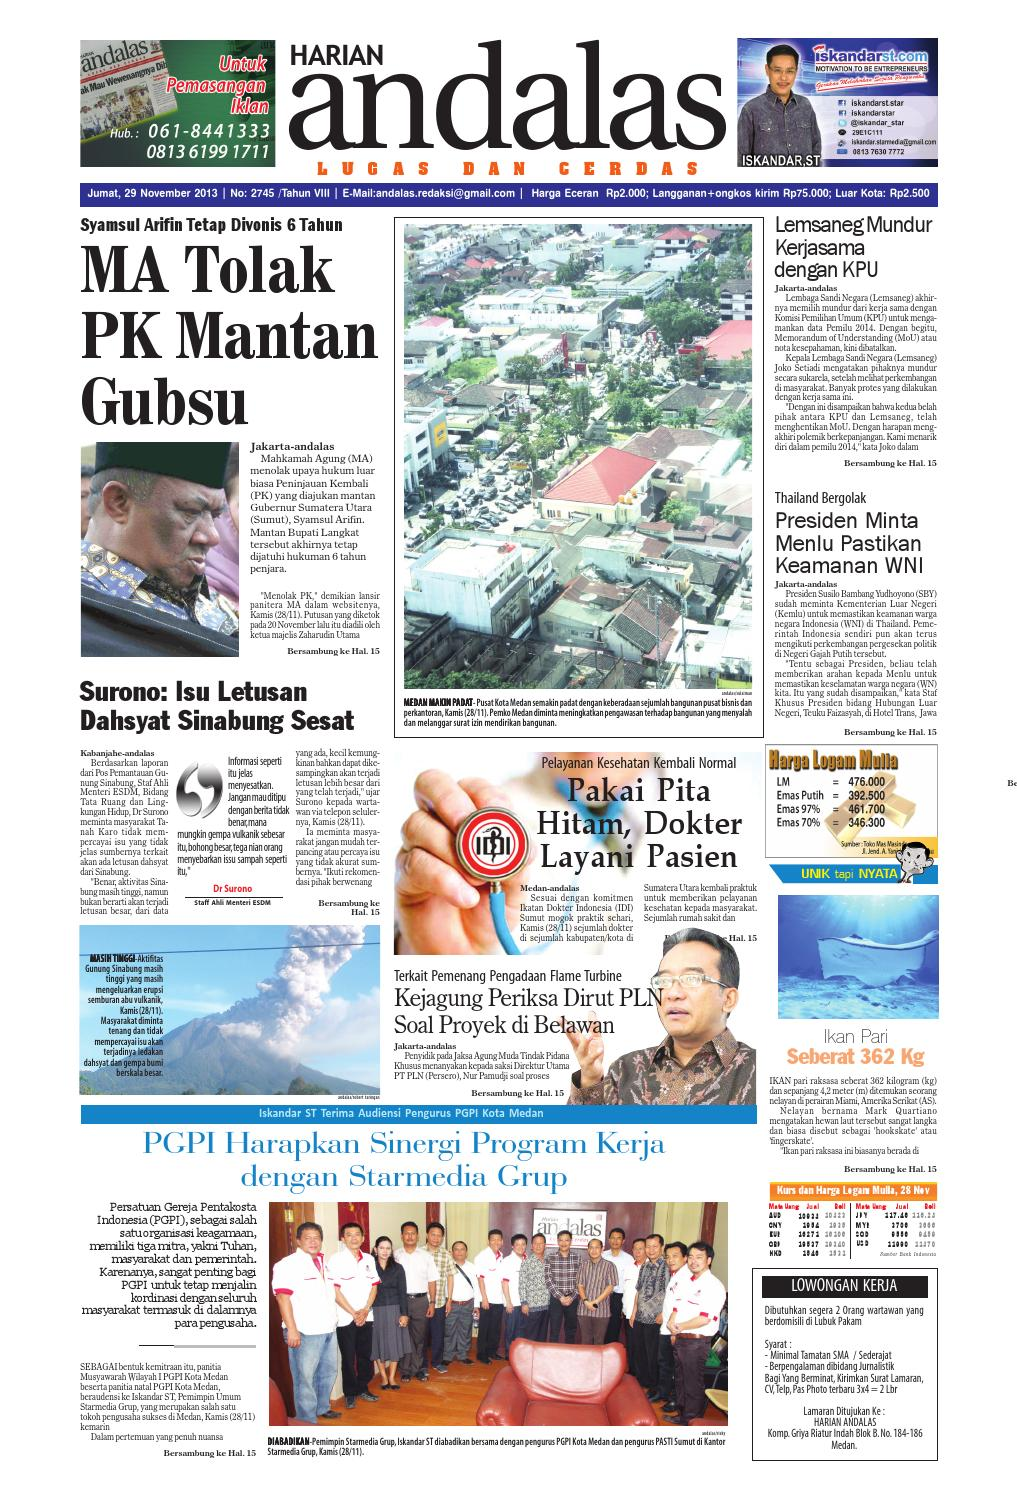 Epaper Andalas Edisi Jumat 29 November 2013 By Media Andalas Issuu